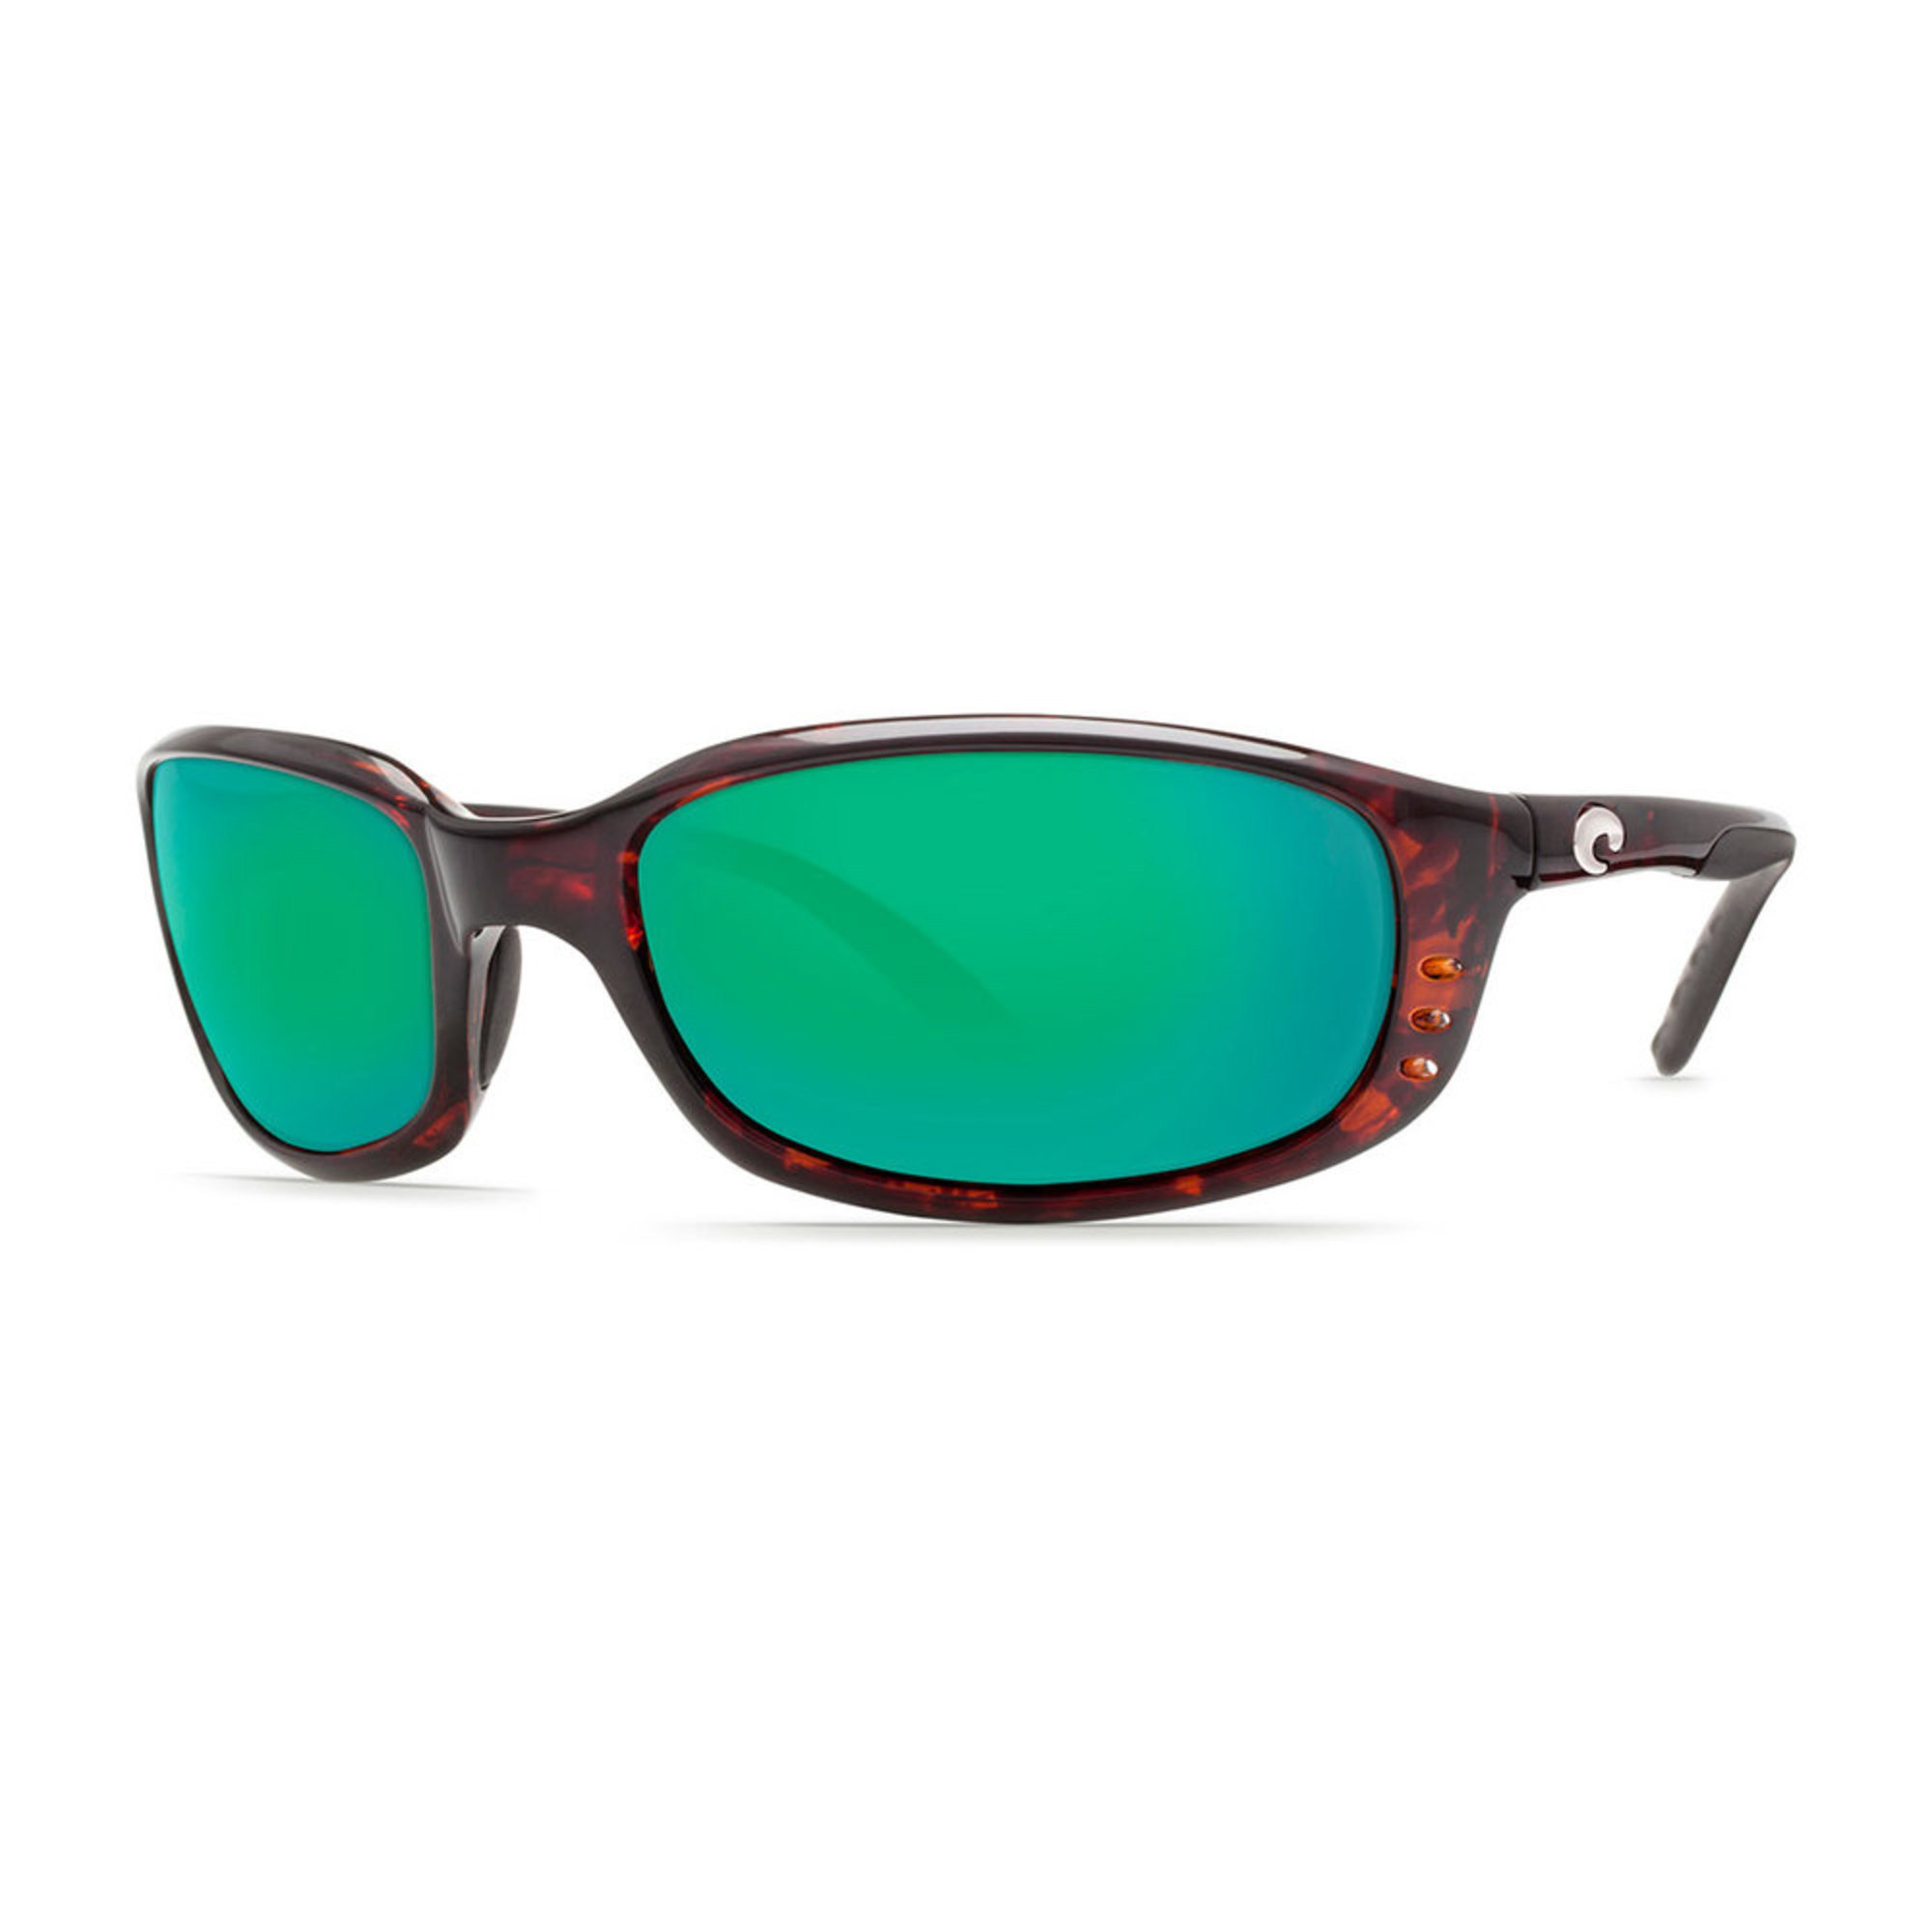 del mar men Shop costa del mar polarized sunglasses for men featuring the highest quality  100% uv protection lens for fishing, boating and everything.